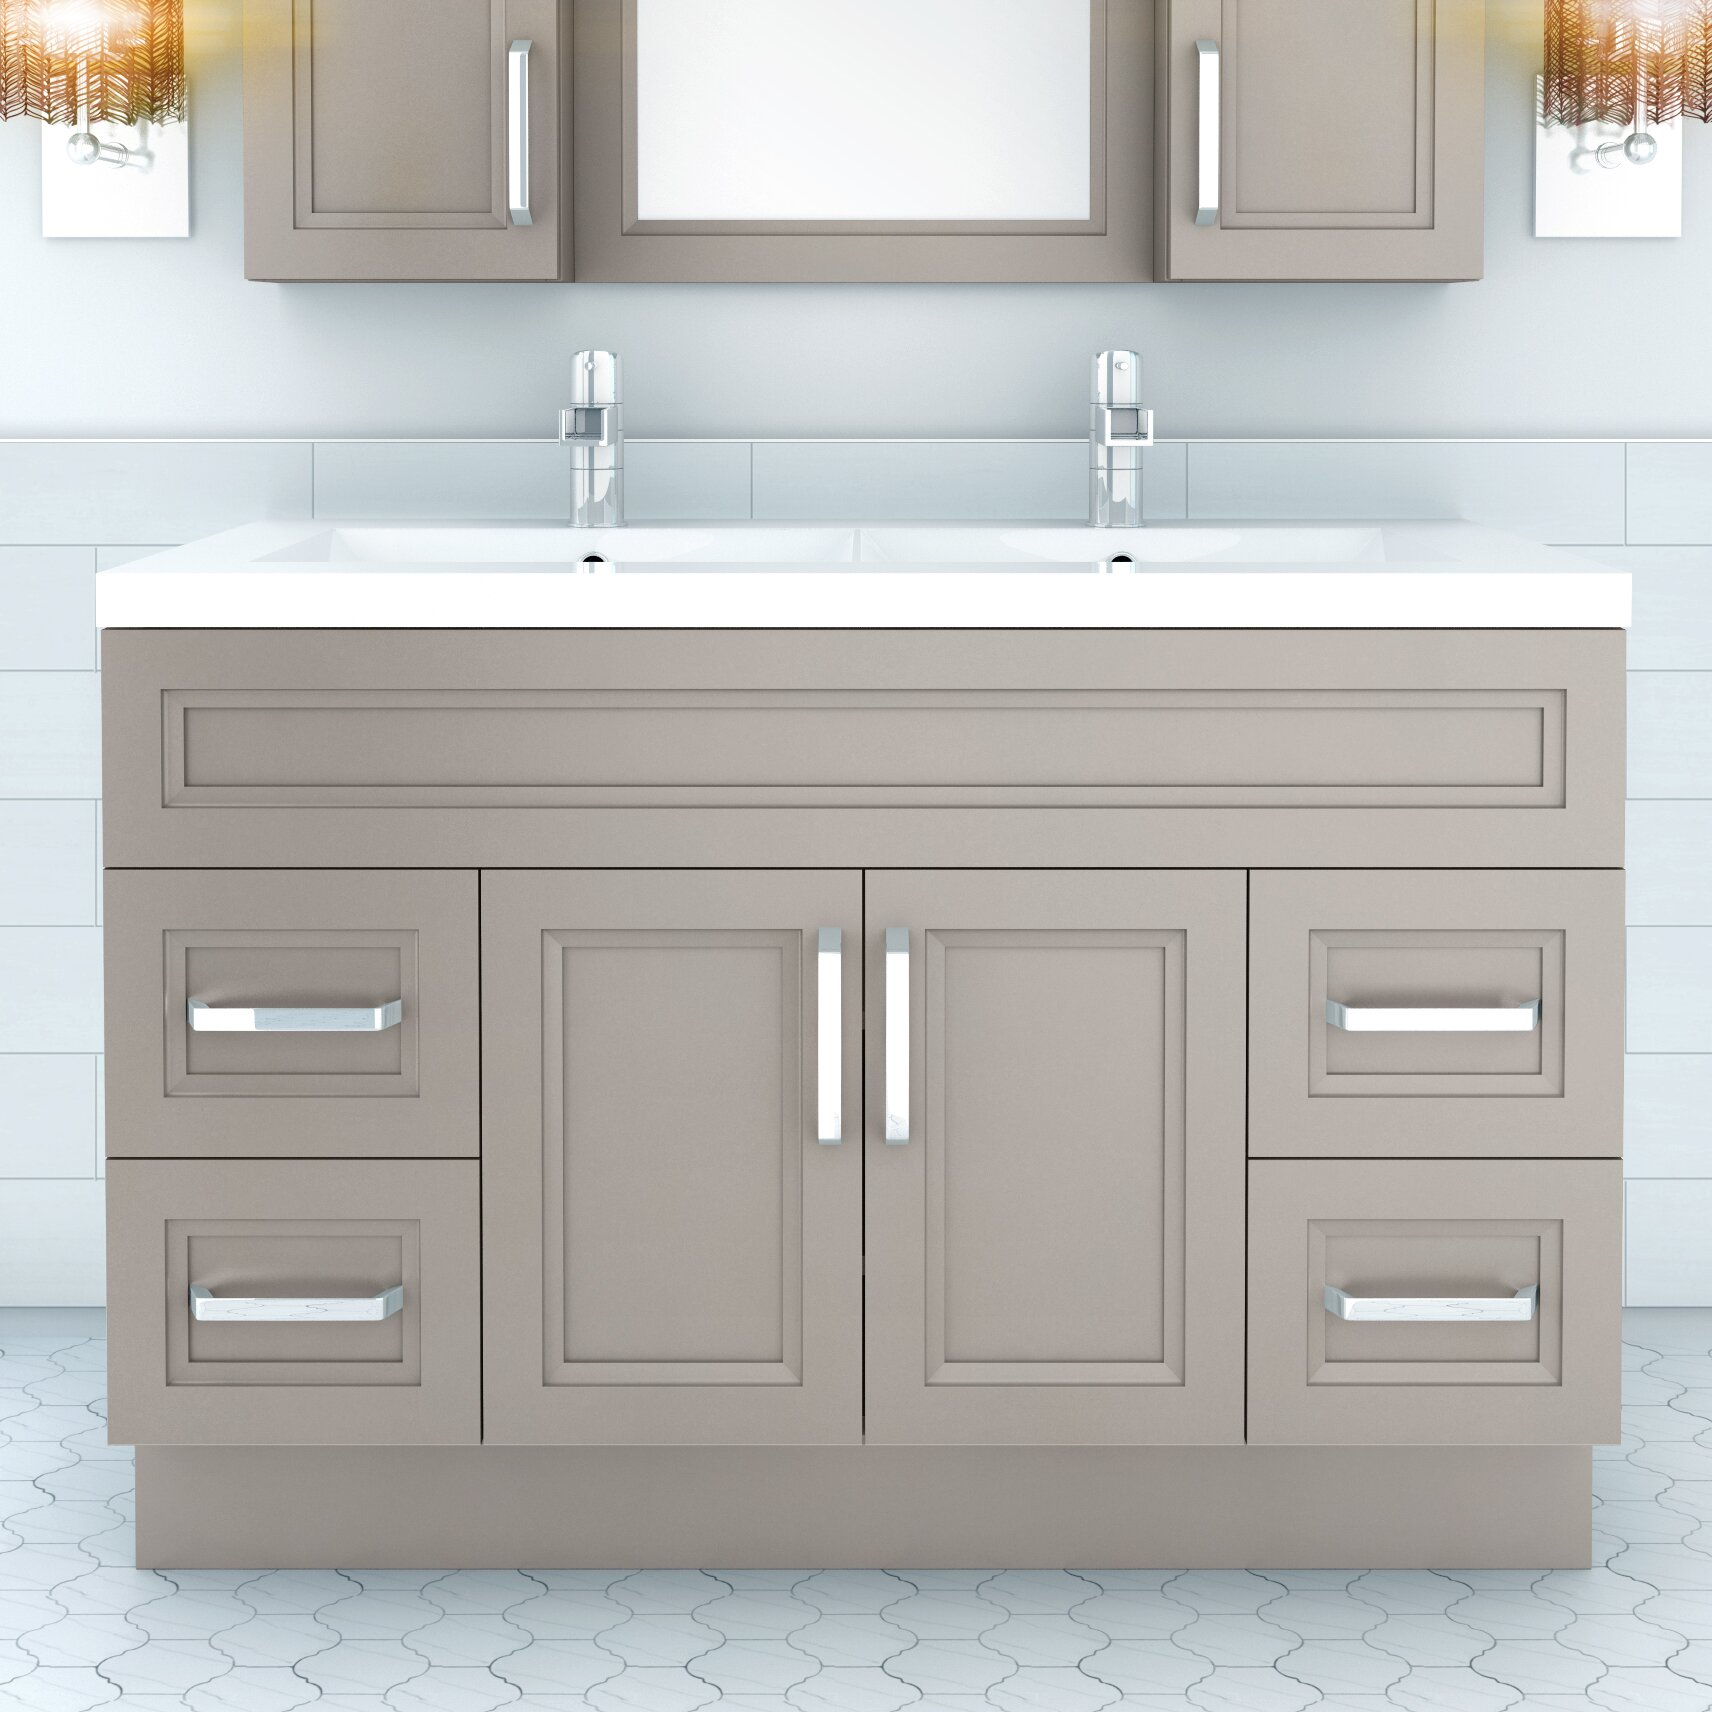 Cutler Kitchen Bath Urban 48 Vanity Double Bowl